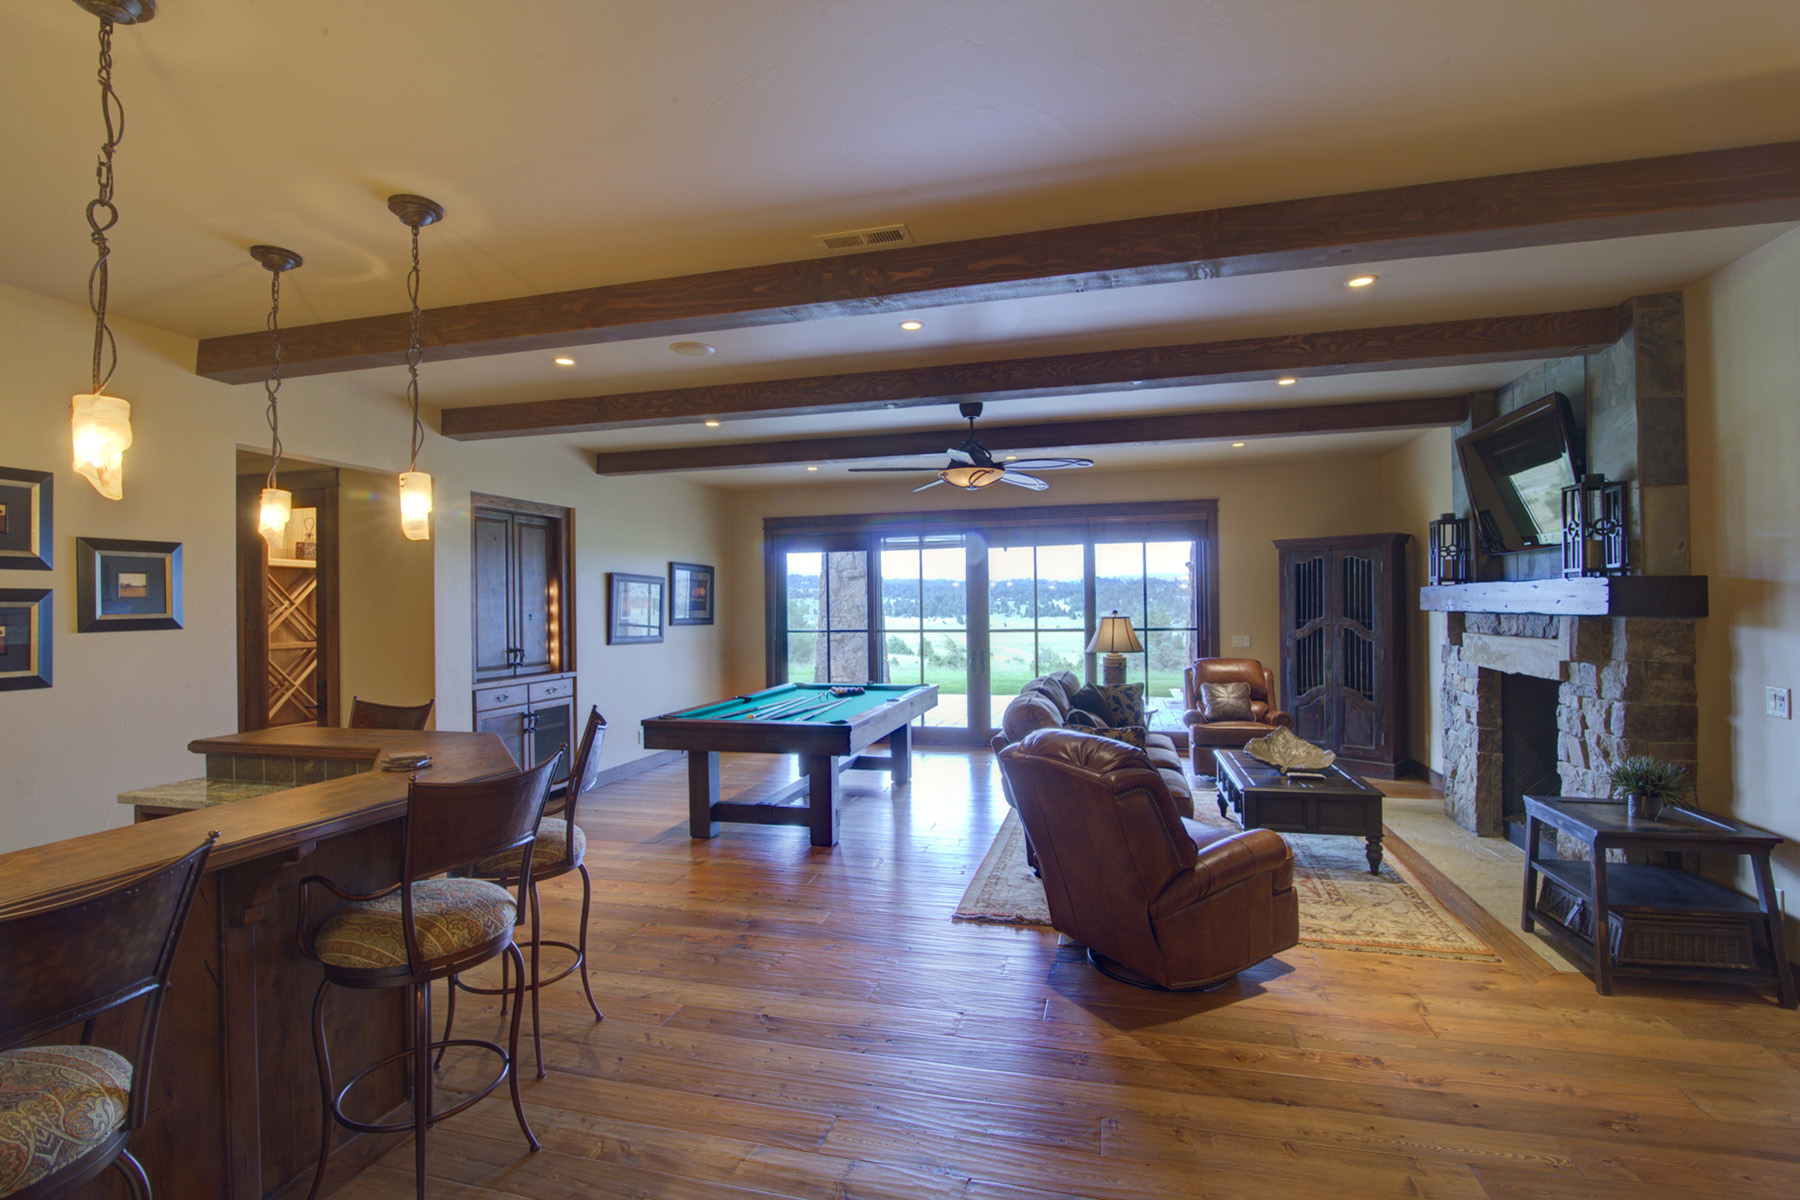 Additional photo for property listing at 672 Dry Gulch Way , Deer Lodge, MT 59722 672  Dry Gulch Way Deer Lodge, Montana 59722 United States